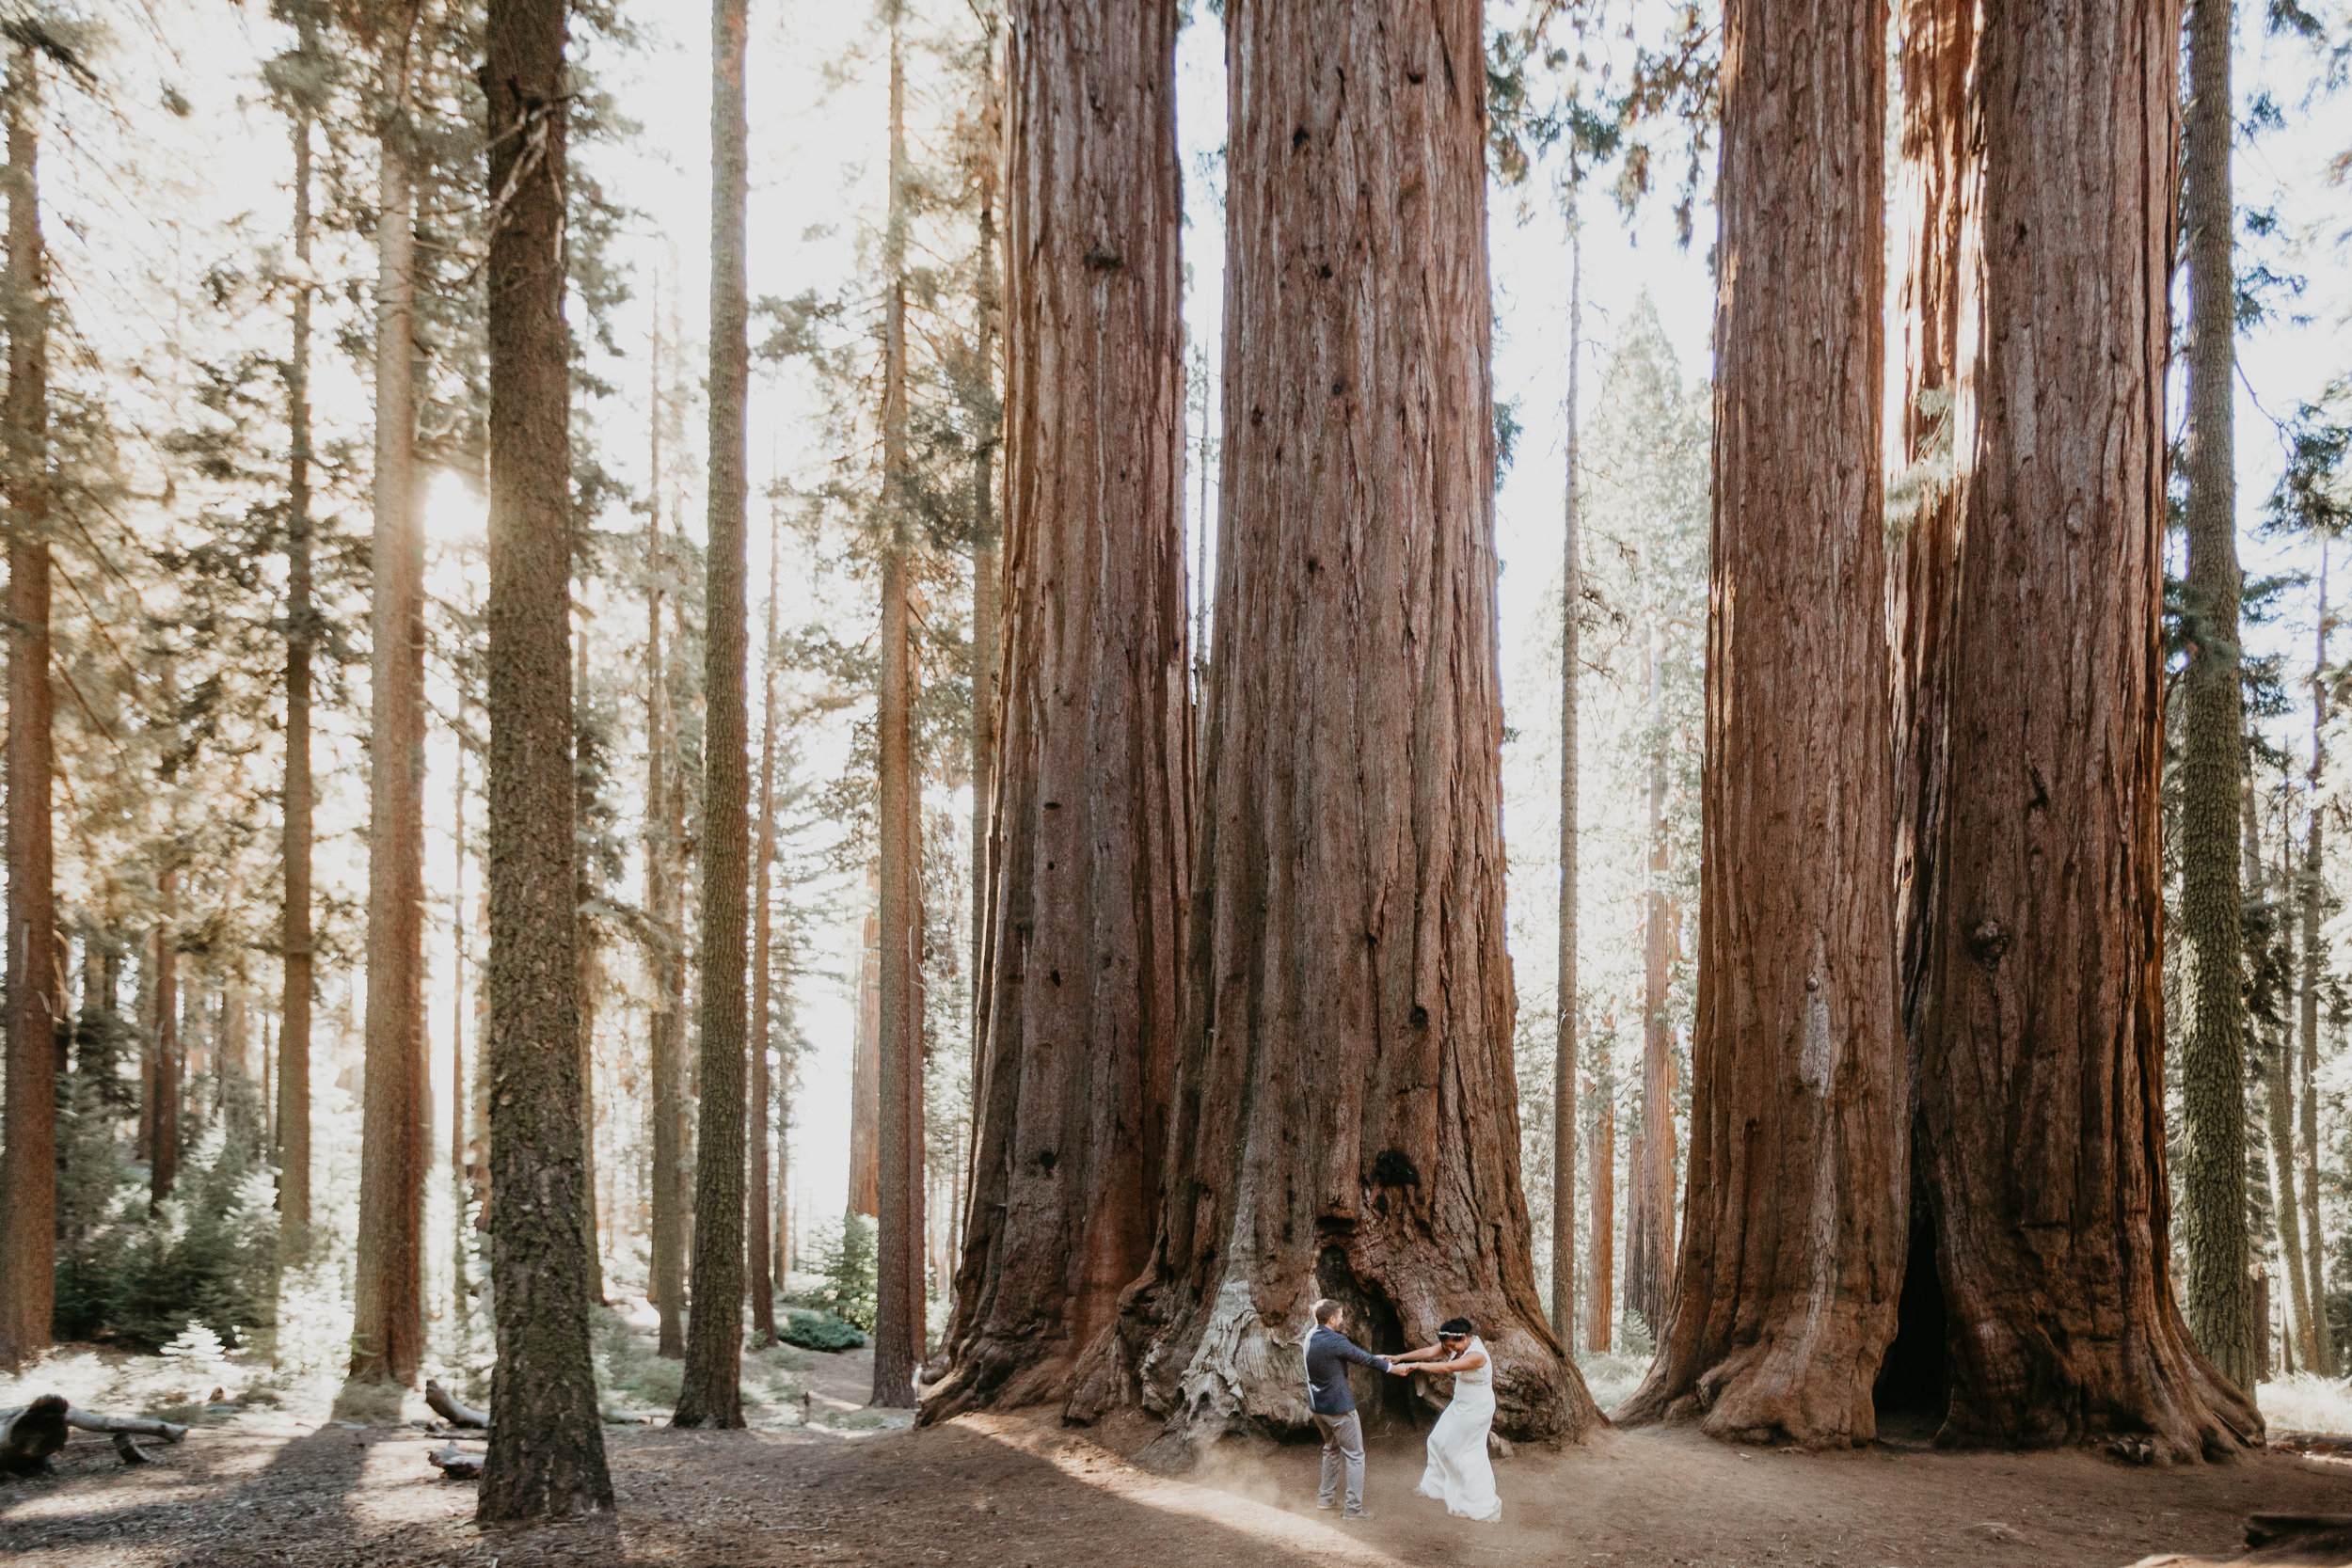 nicole-daacke-photography-sequoia-national-park-adventurous-elopement-sequoia-elopement-photographer-redwoods-california-intimate-wedding-photographer-14.jpg